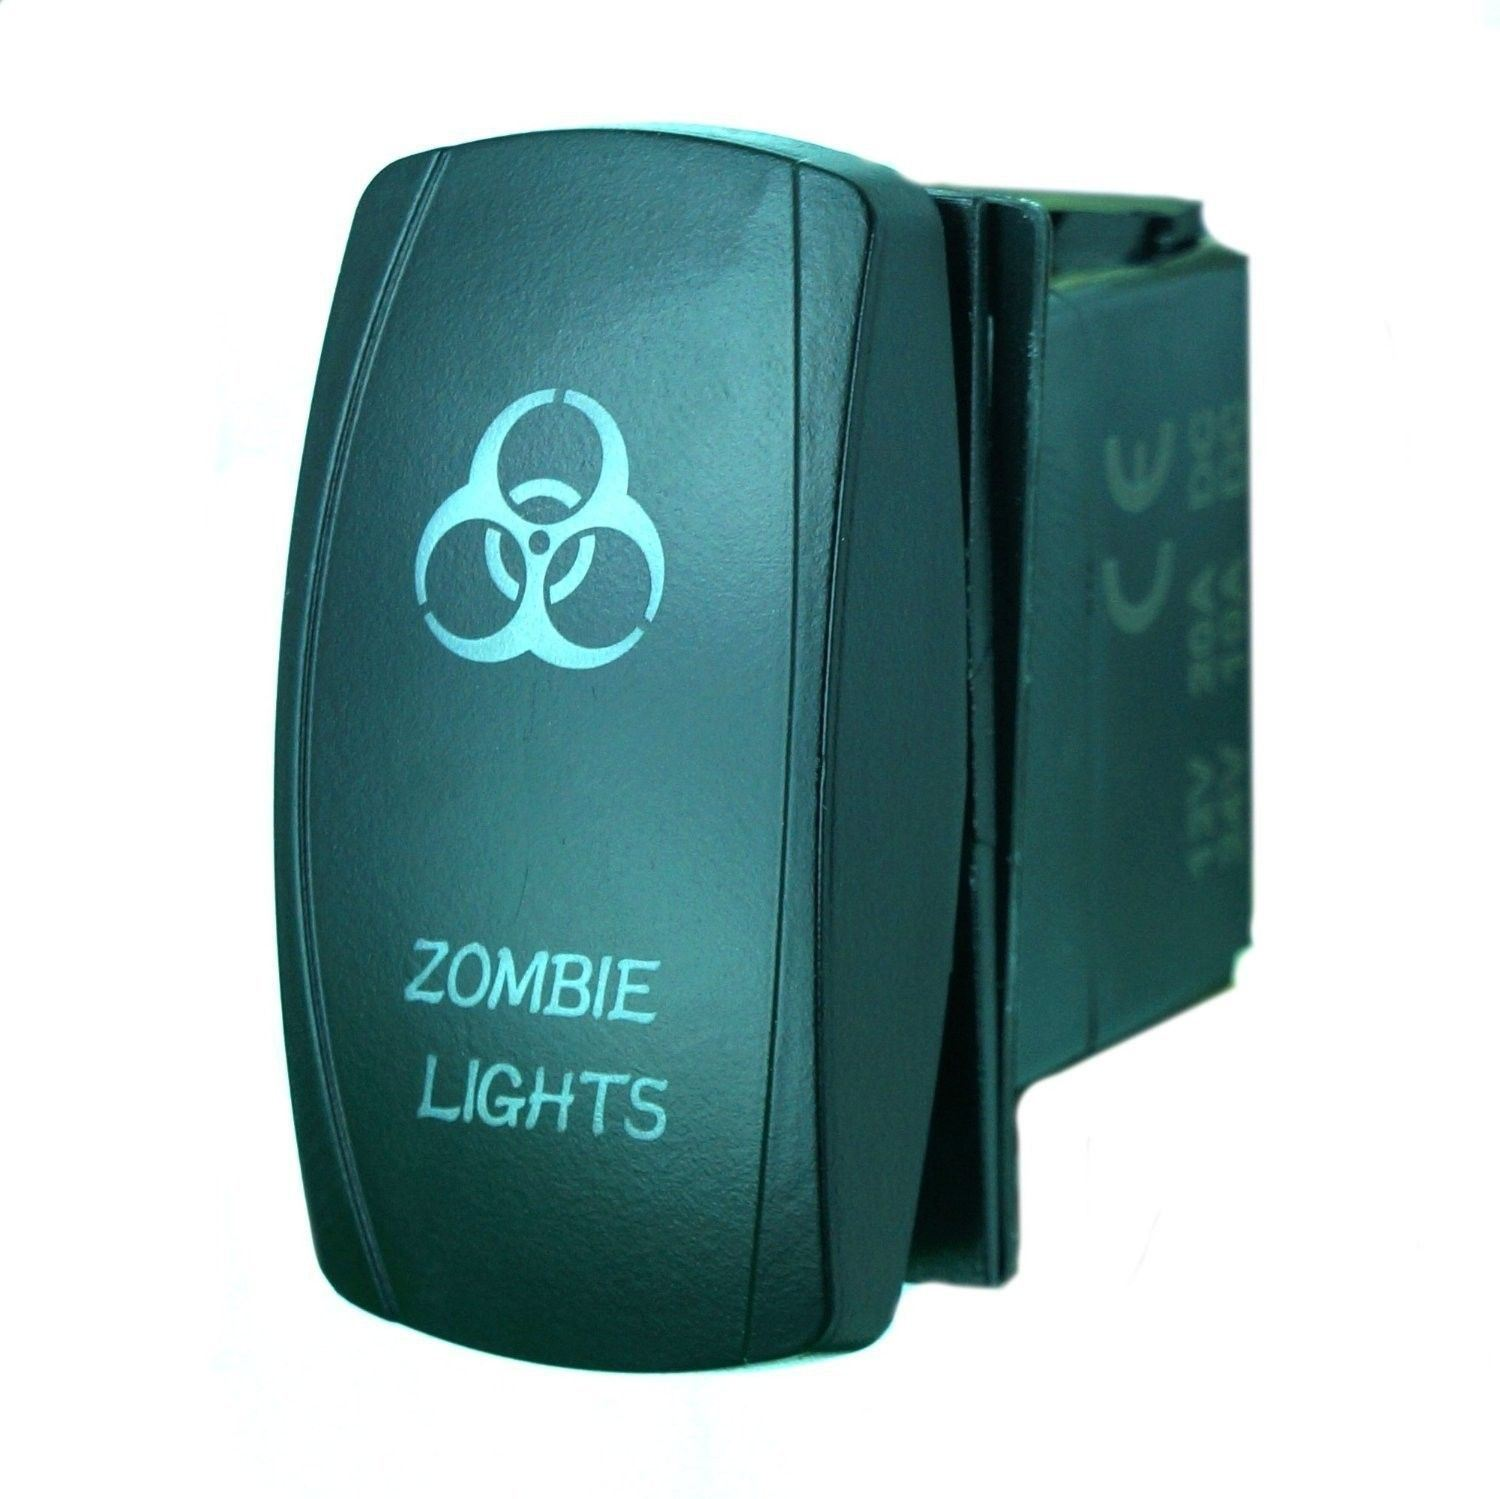 China Laser Blue Boat Marine Rocker Switch Zombie Lights 20a 12v On Details About Carling 5 Amp Single Circuit Breaker Off Led Light Car